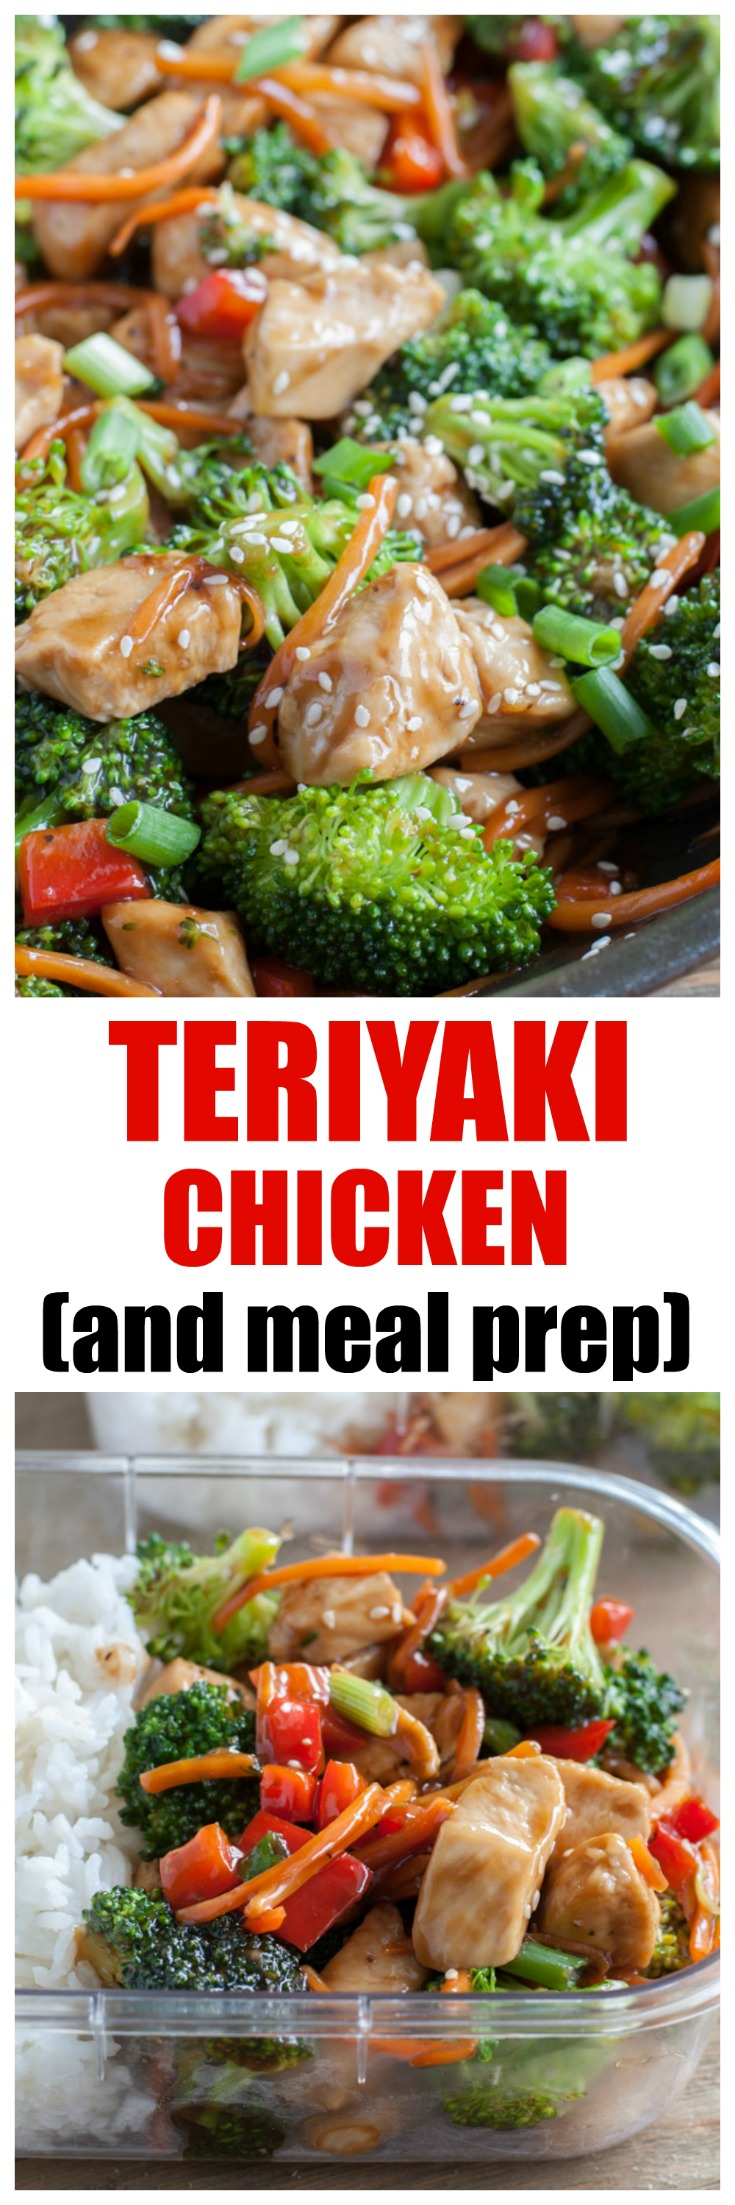 Teriyaki Chicken with vegetables. A quick and easy meal made with homemade teriyaki sauce. #teriyakichicken #chickenteriyaki #teriyaki